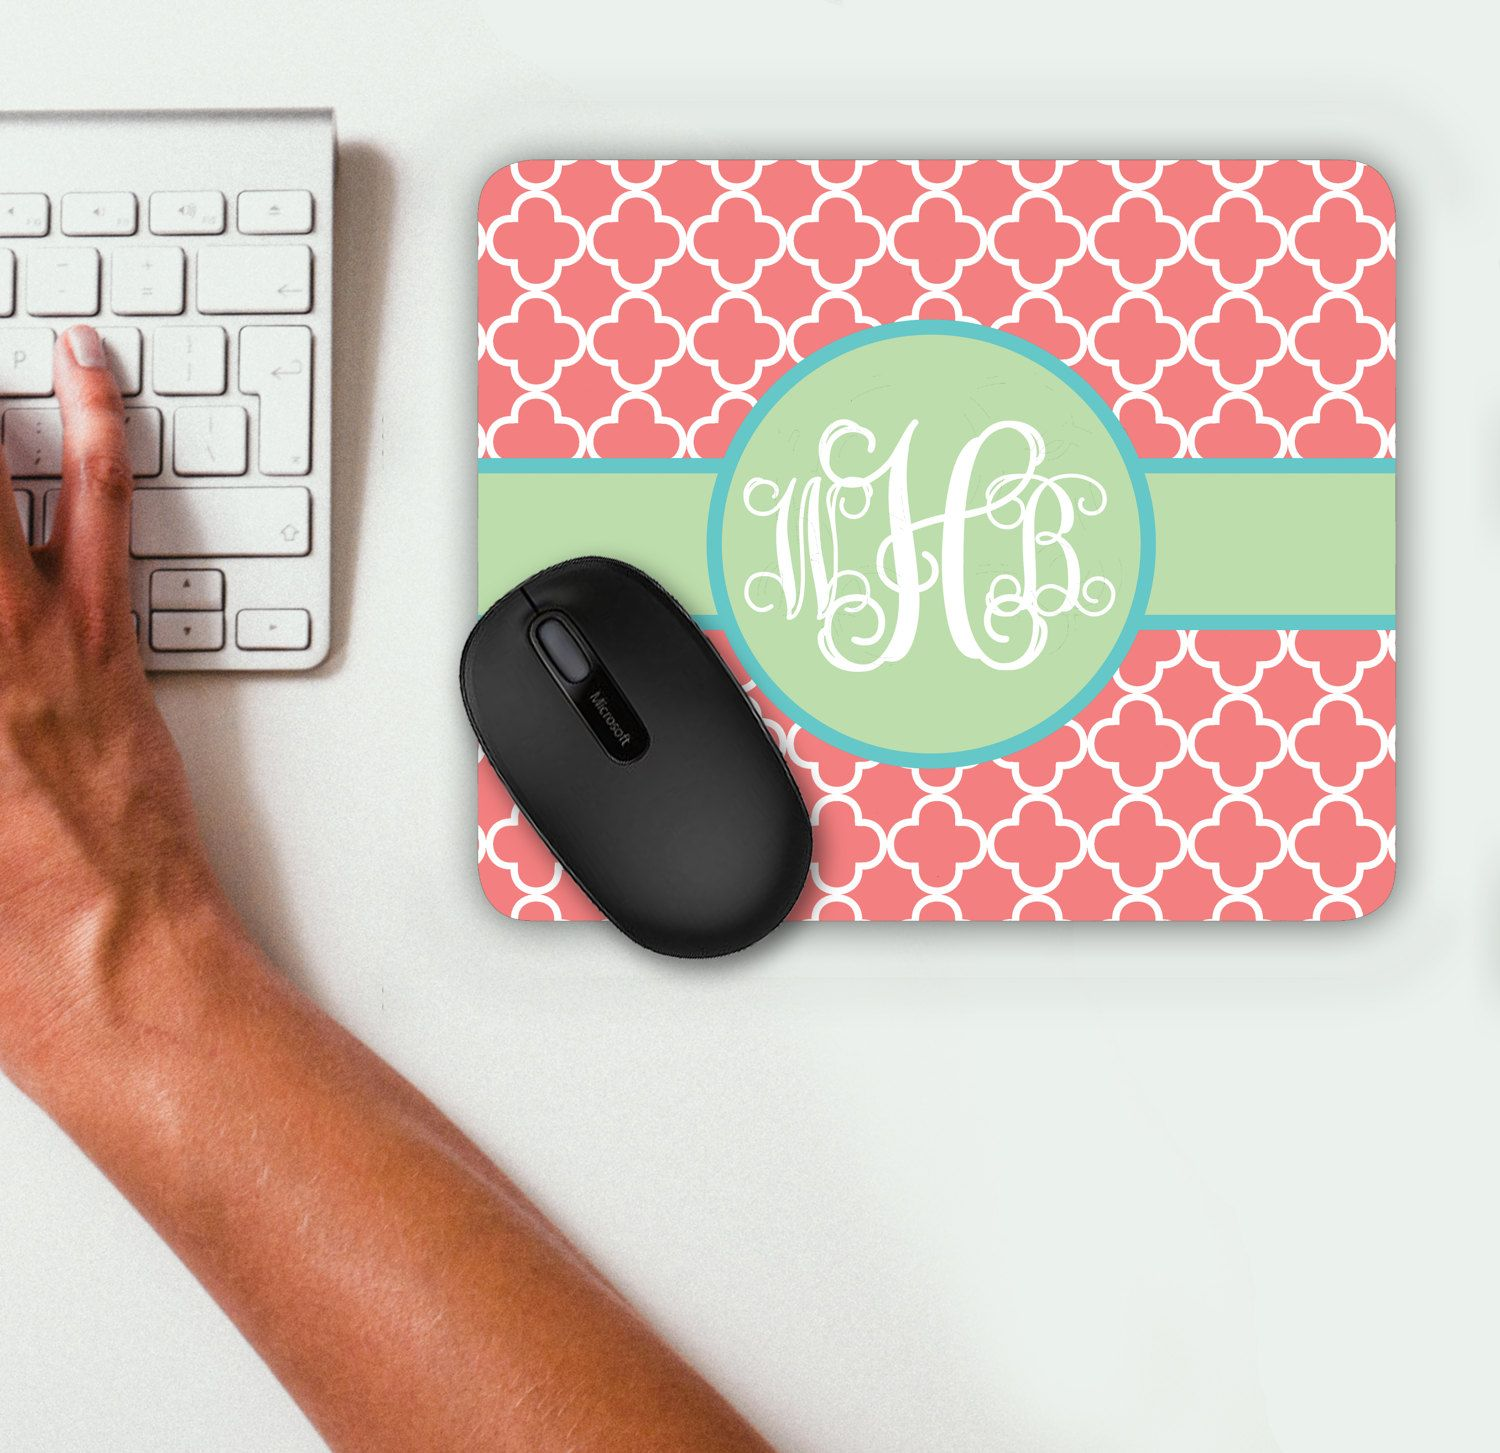 Mouse Pad Gift Ideas Personalized Mouse Pad Personalized Mousepad